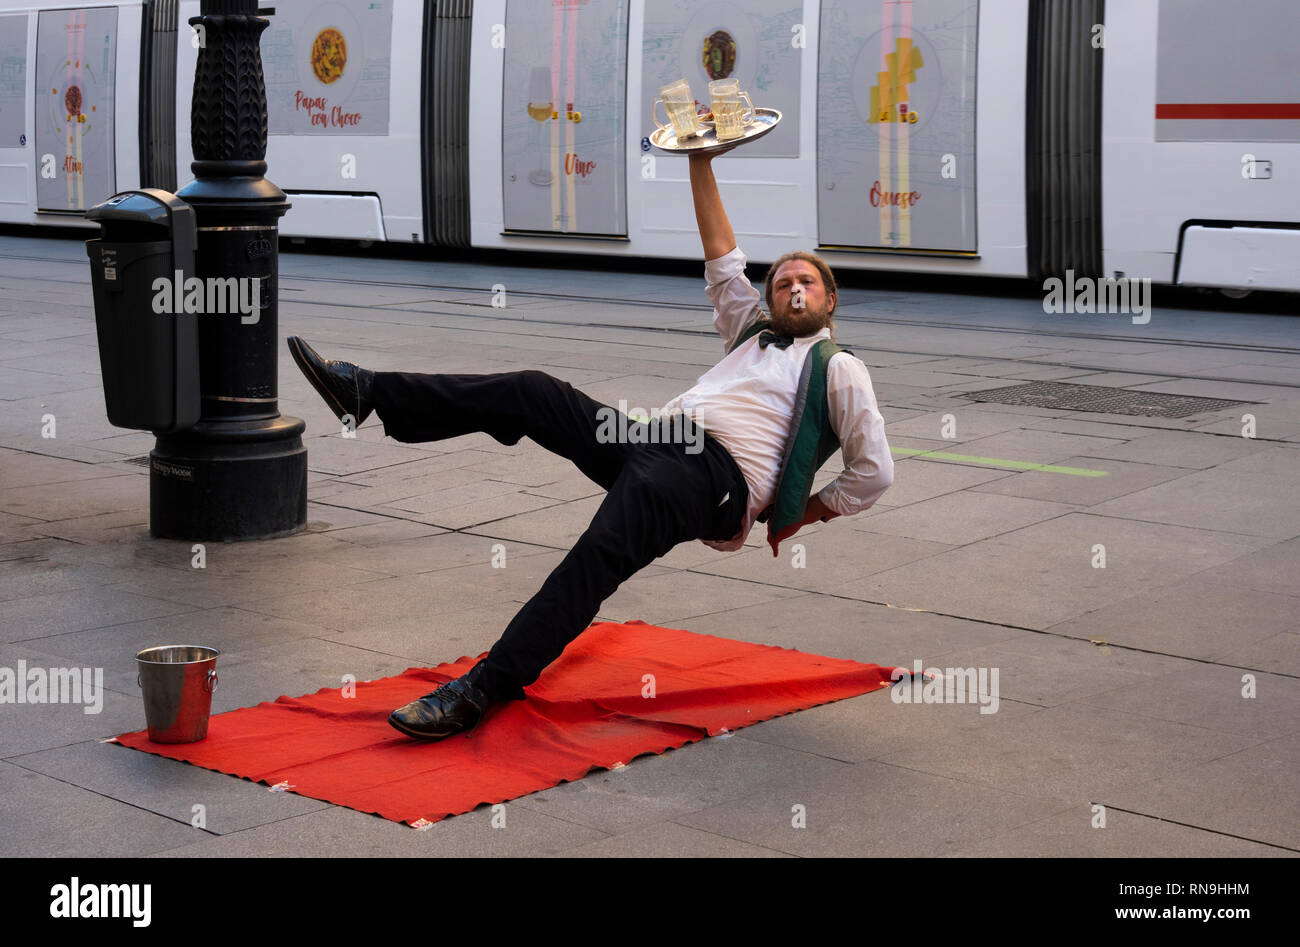 street-performer-holding-a-pose-on-the-s